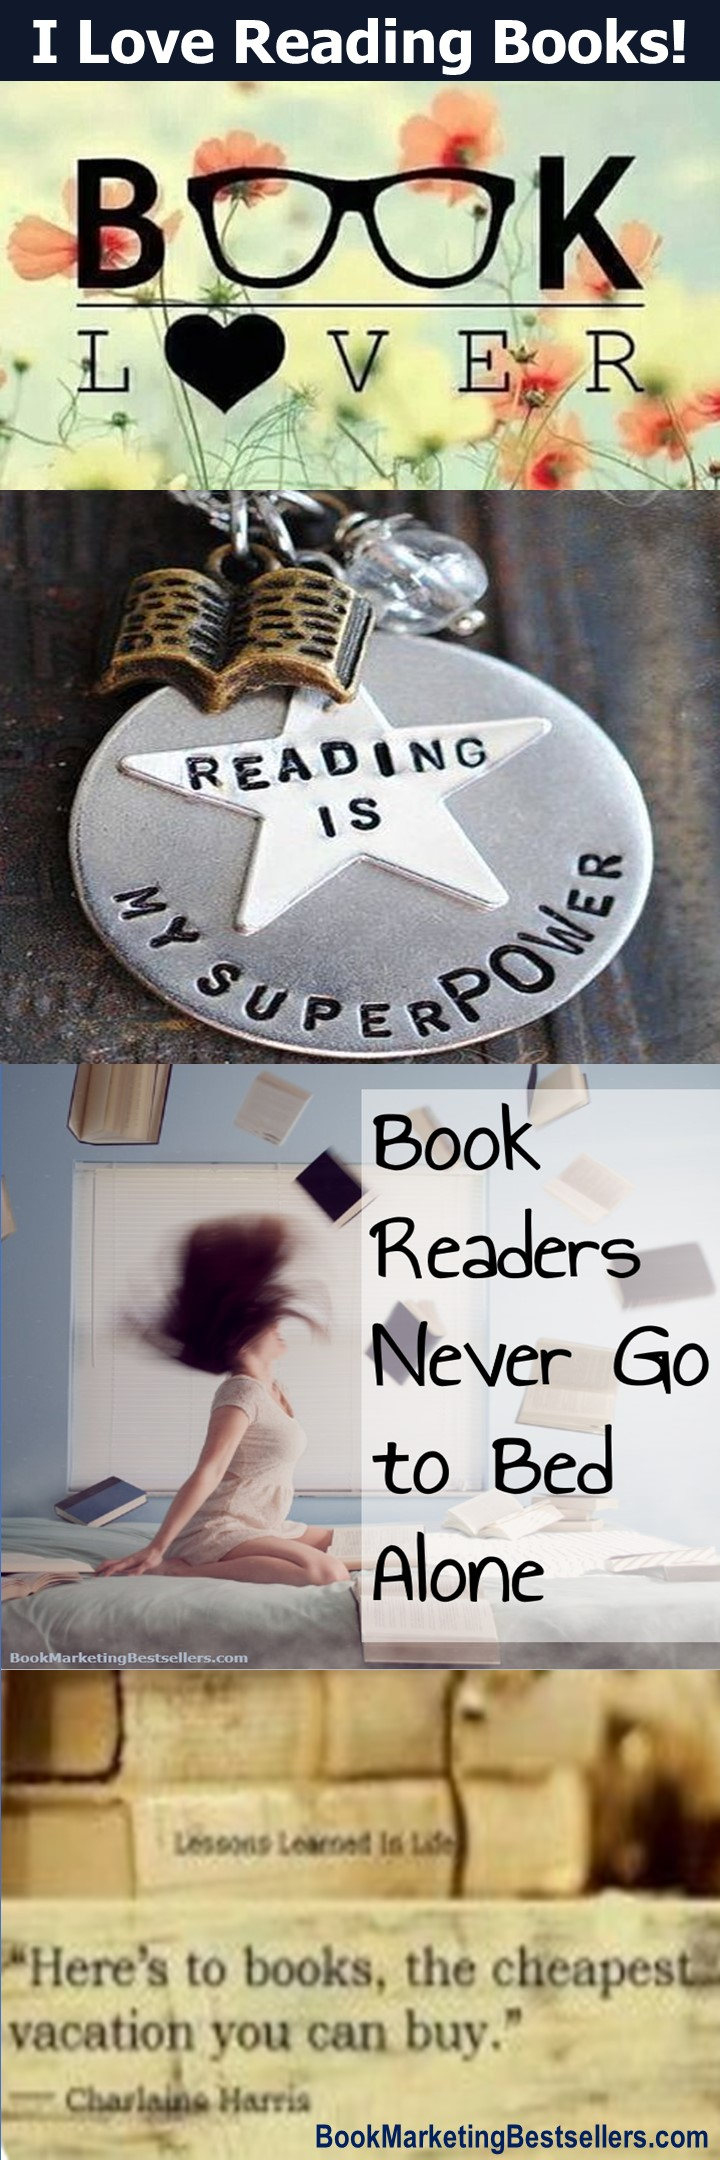 I Love Reading Books! - Book Lover ... Reading Is My SuperPower ... Book Readers Never Go to Bed Alone ... Here's to Books, the Cheapest Vacation You Can Buy. — Charlaine Harris